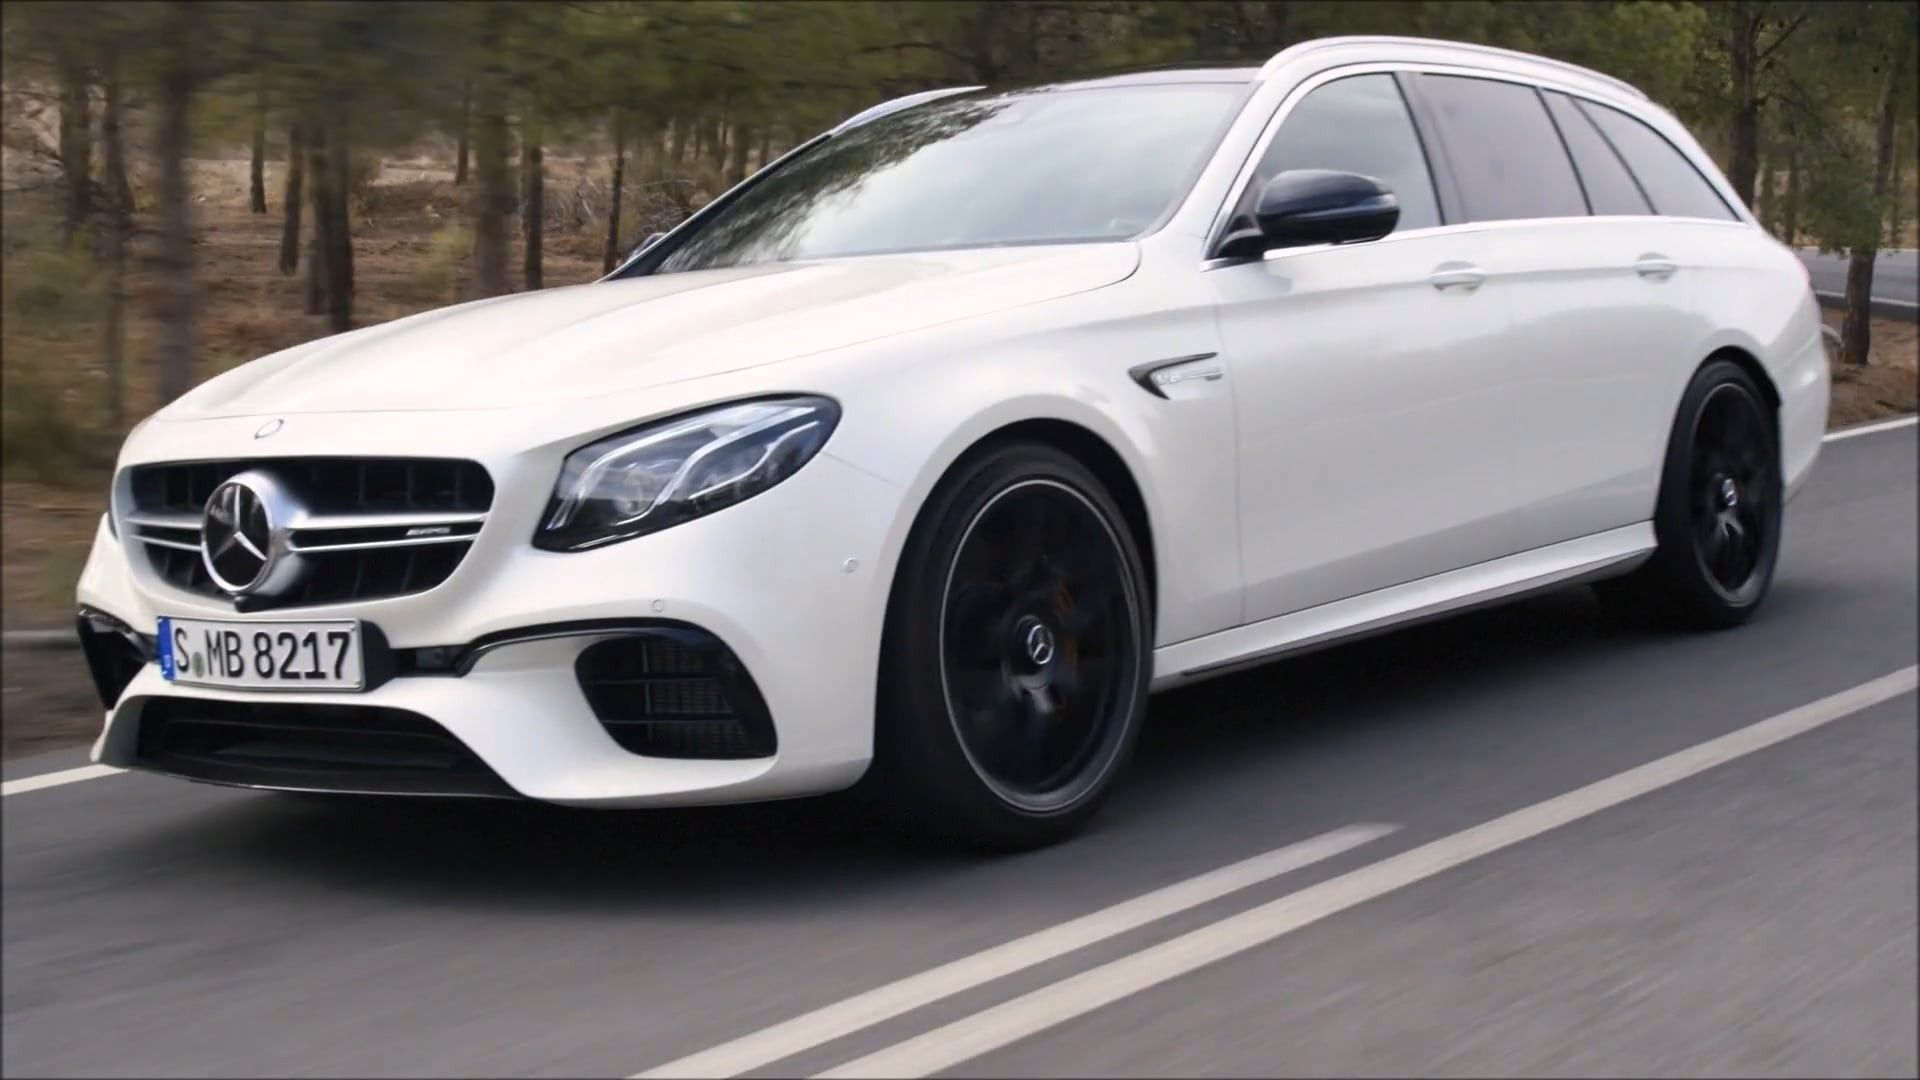 2019 Mercedes Amg E63 S Wagon Price Car Gallery All Car Reviews